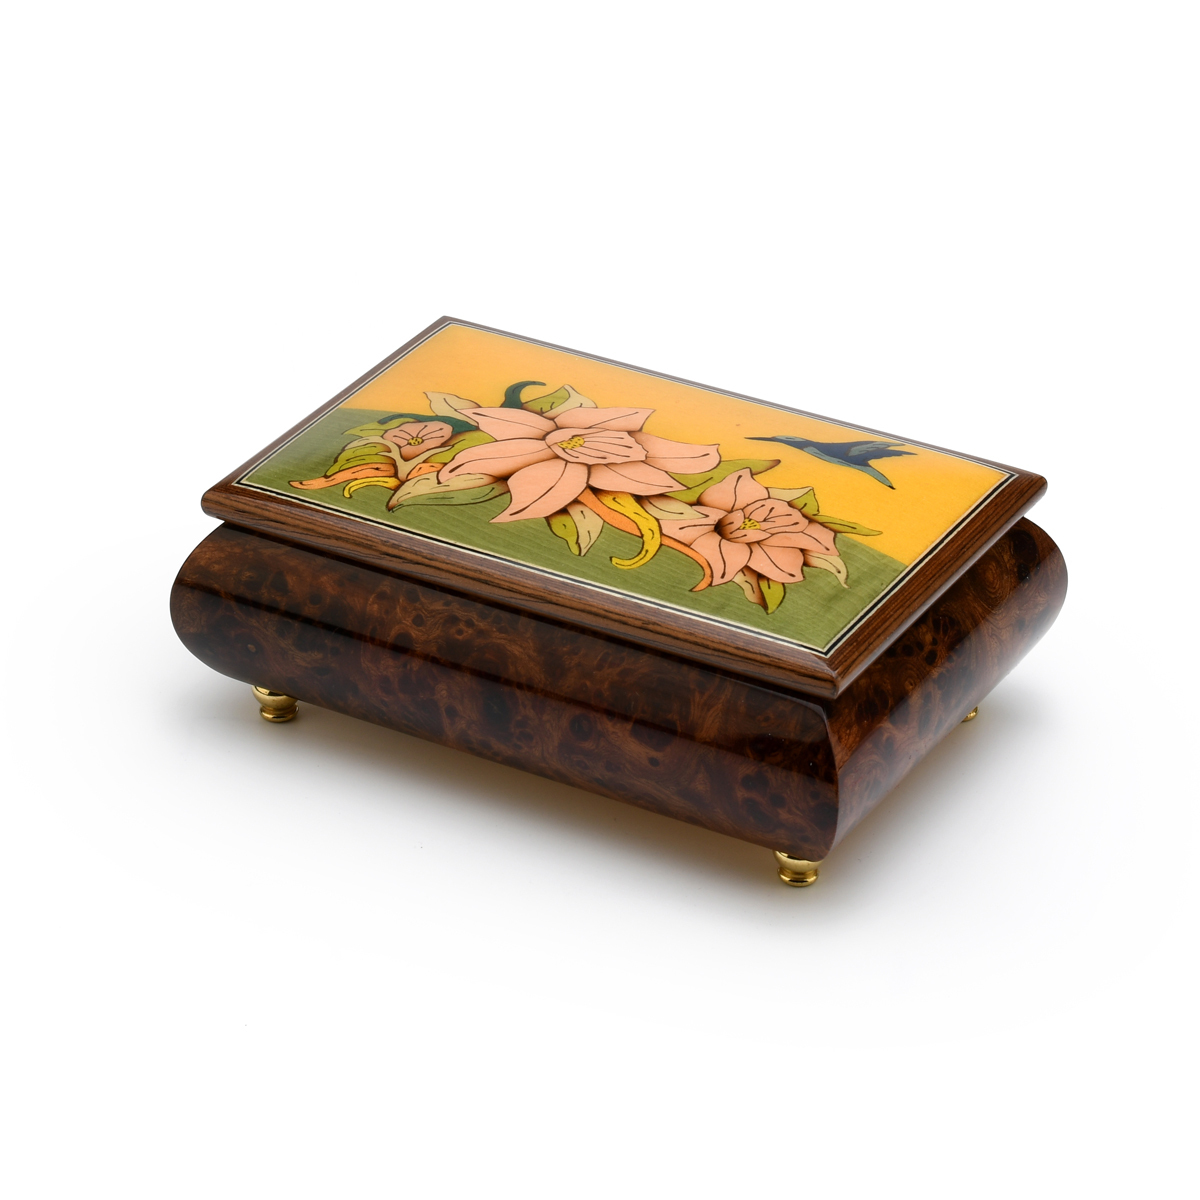 Handcrafted 18 Note Tropical Theme Inlay Music Box with Hummingbird and Floral Design